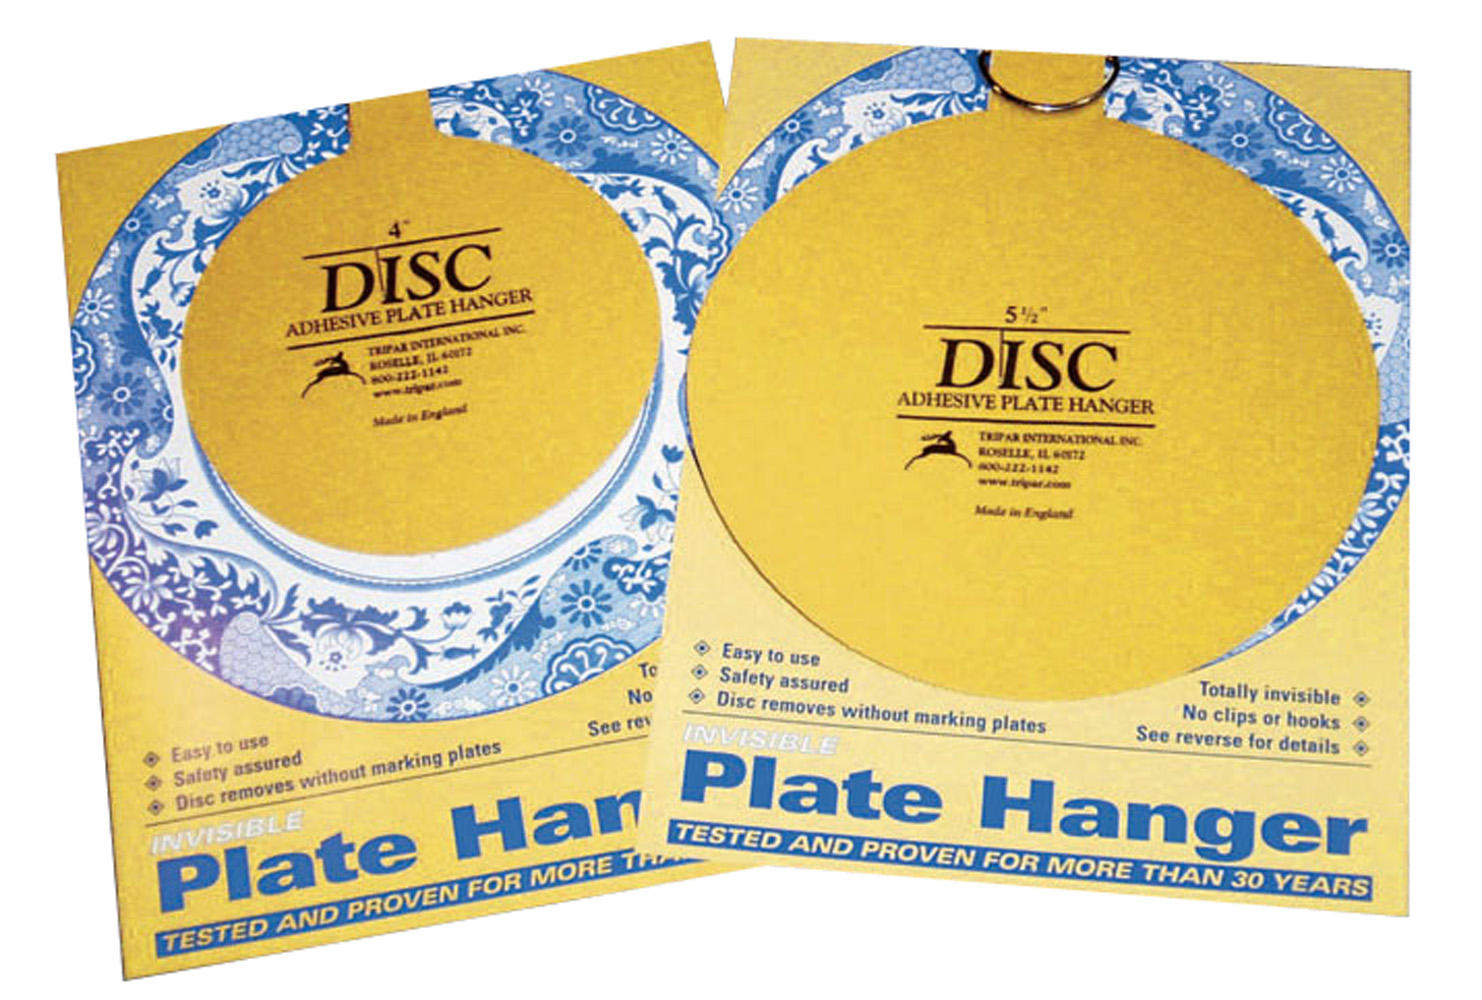 Disc Plate Hanger  sc 1 st  Tripar International & Disc Plate Hanger - Tripar International Inc.